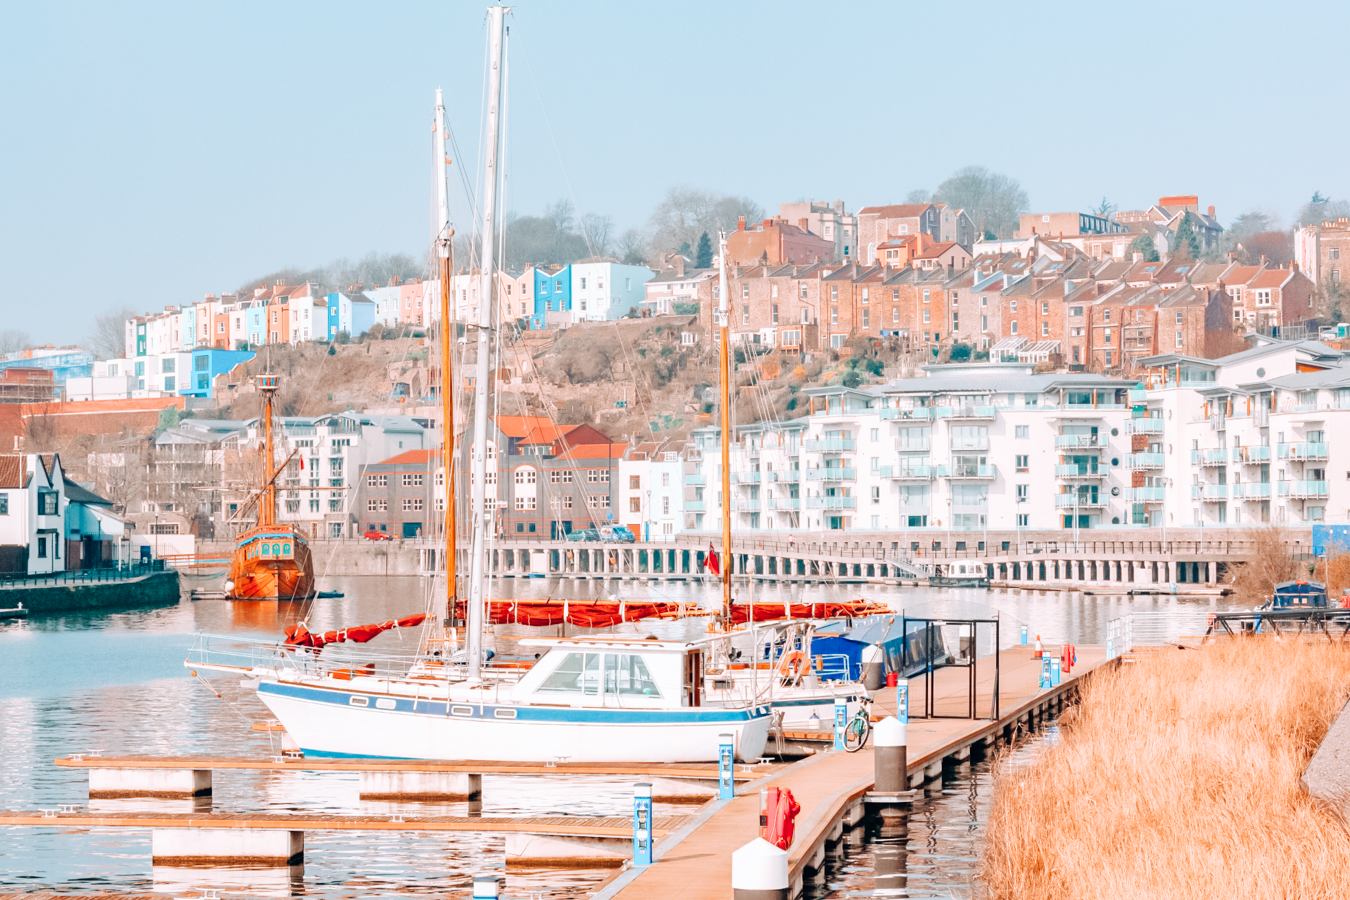 Boats and houses in Bristol